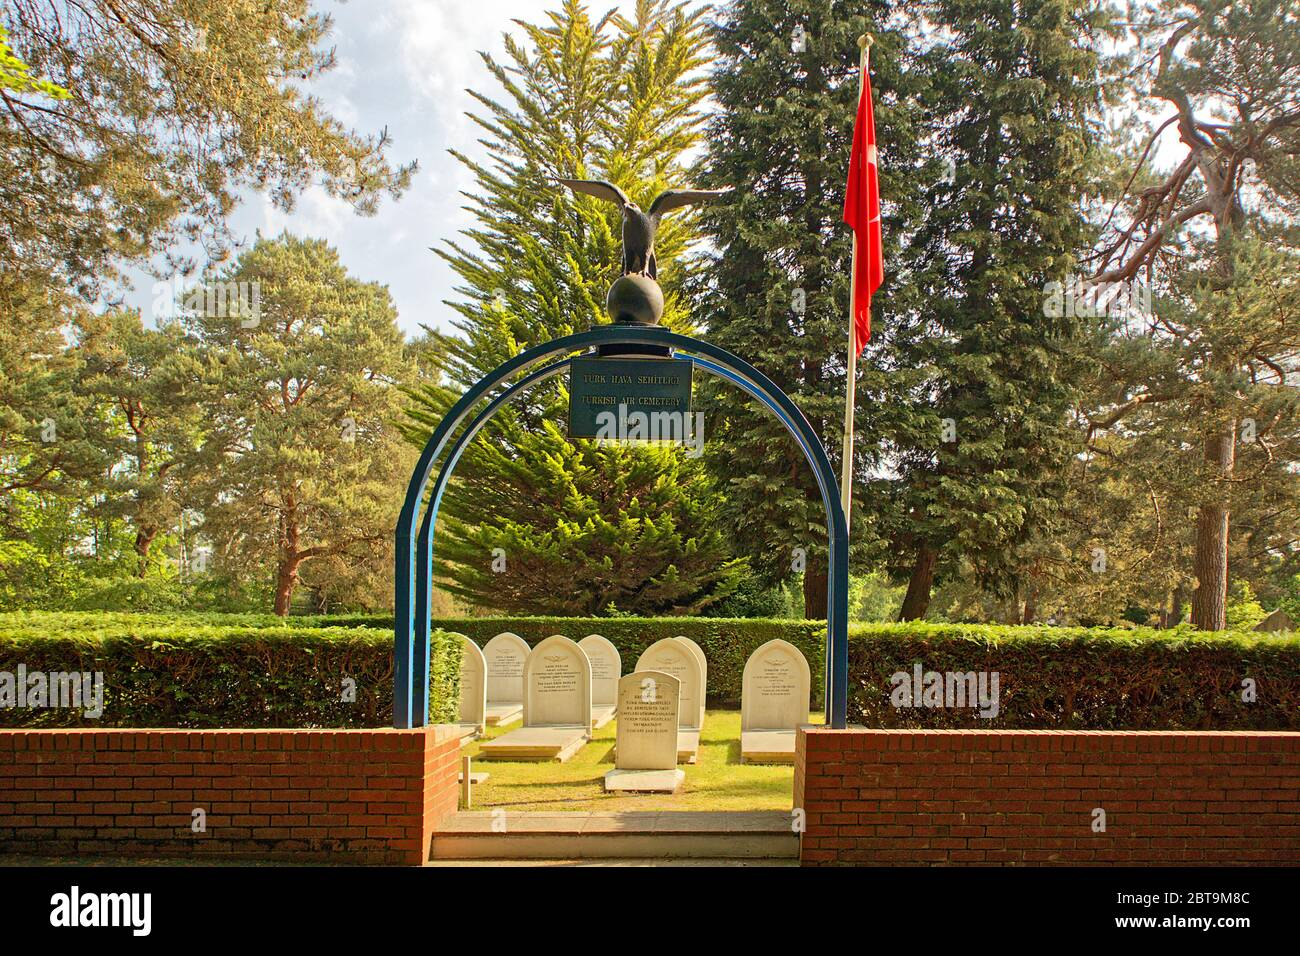 Turkish Air Forces Cemetery Plot at Brookwood Cemetery England Stock Photo